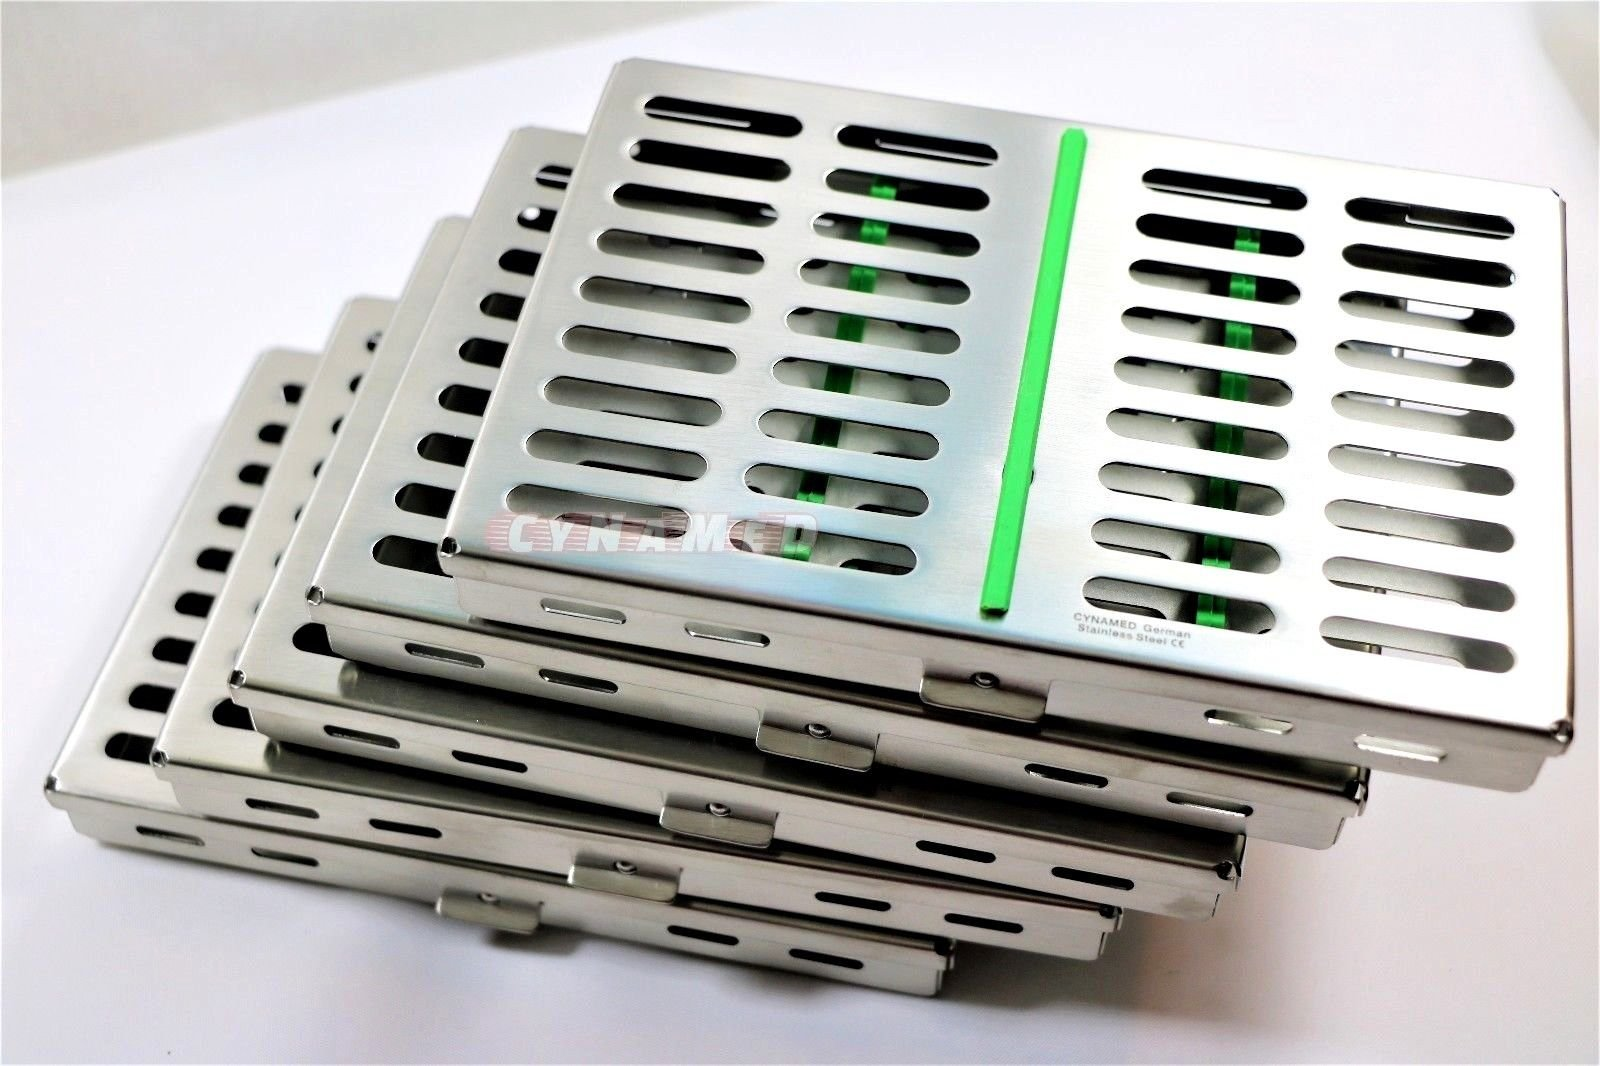 10 German Dental Surgical Autoclave Sterilization Cassette Box for 10 Instruments Green CYNAMED by CYNAMED (Image #3)